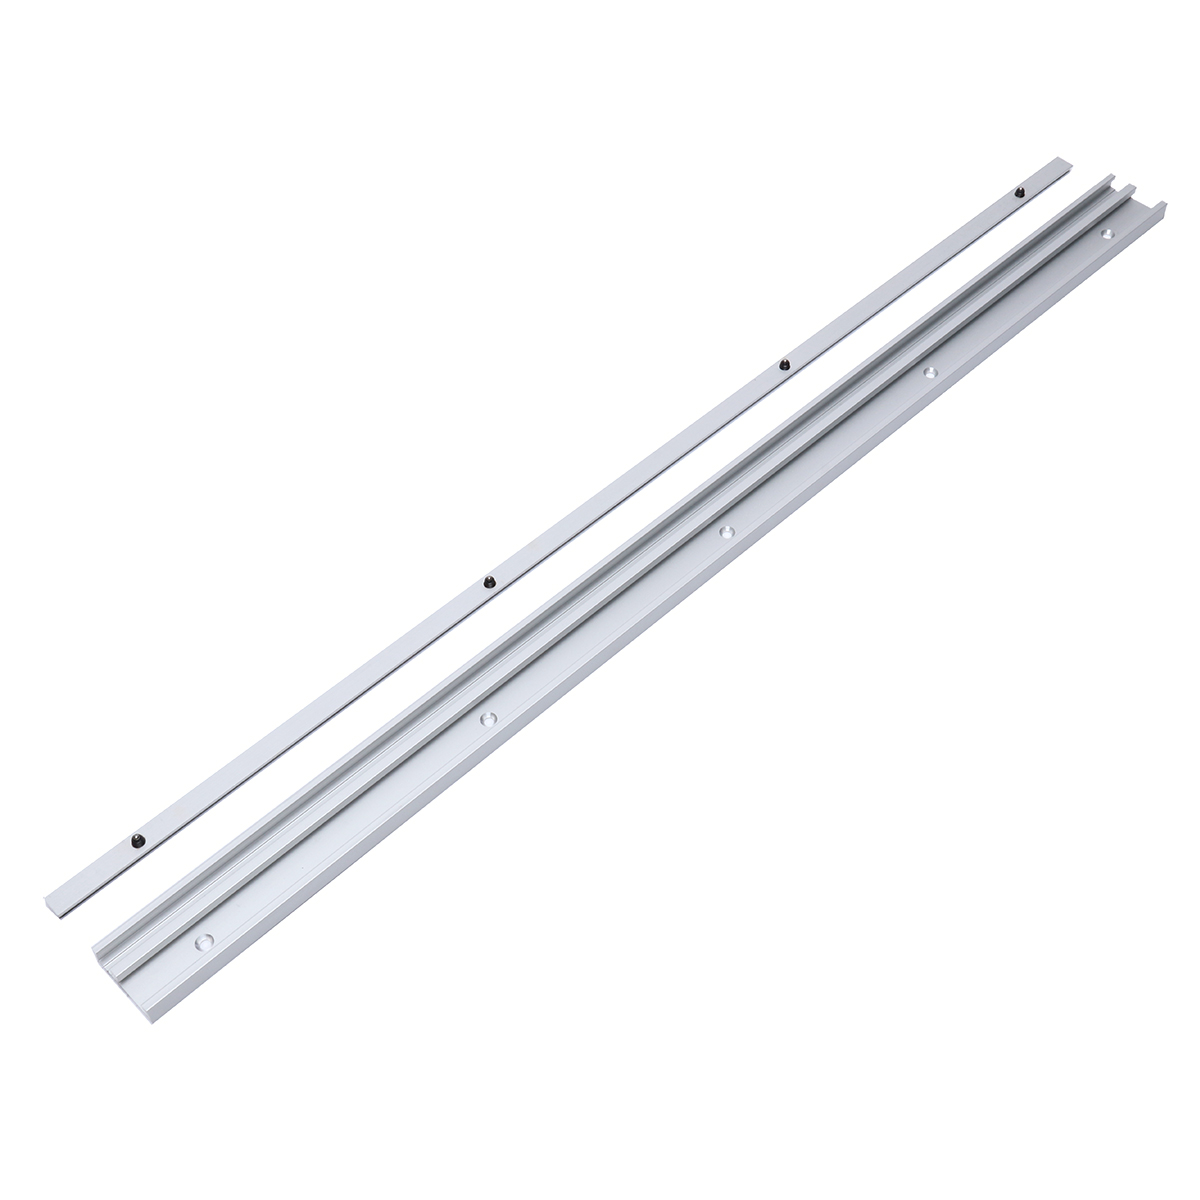 400-1220mm Aluminum Alloy T-Track T-slot Miter Track with Slide Metric Ruler Scale for Table Saw Router Table Woodworking Tool